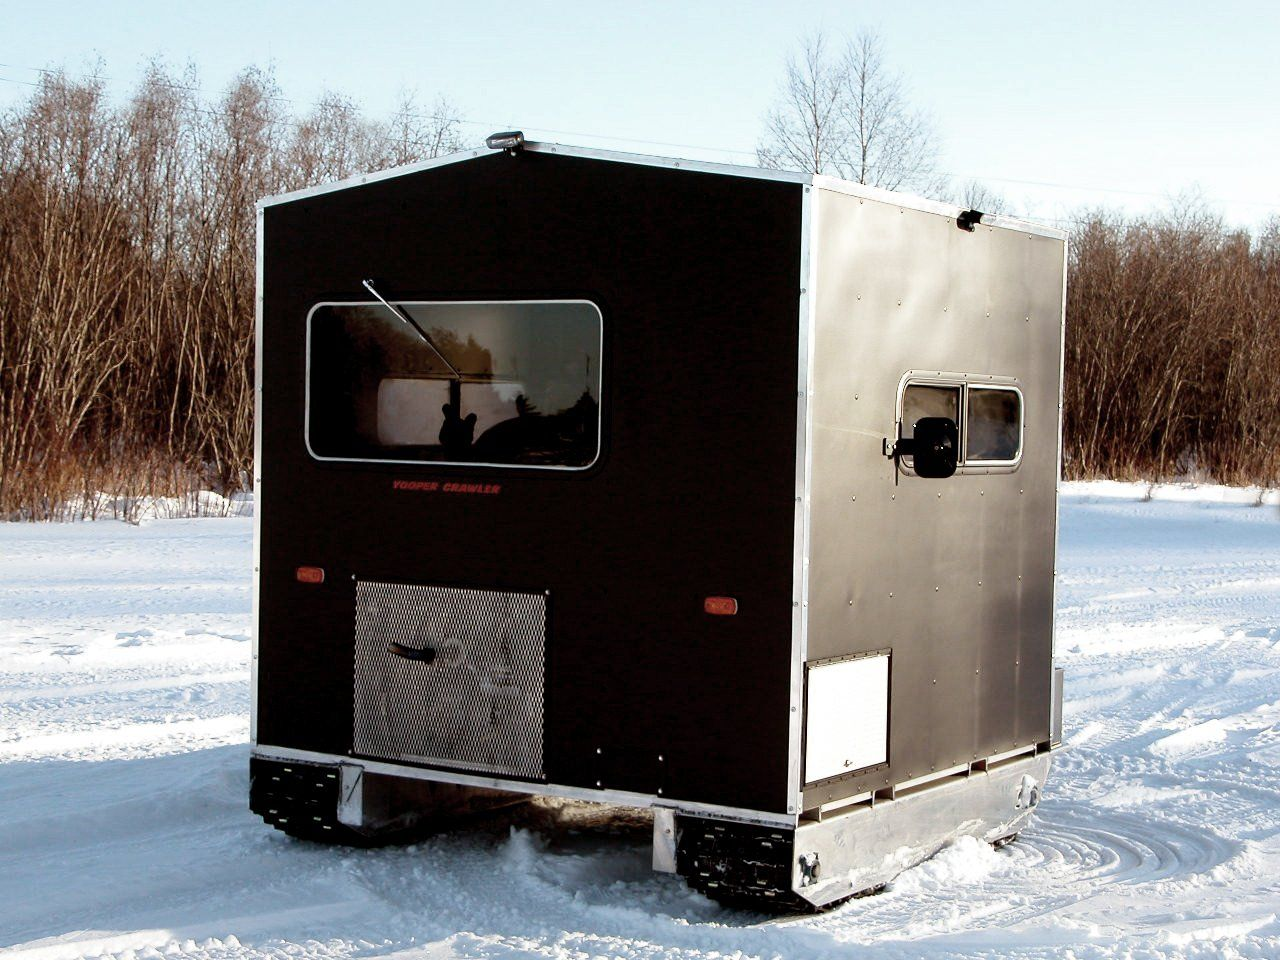 YOOPER CRAWLER A self propelled ice fishing shanty | Rays ...